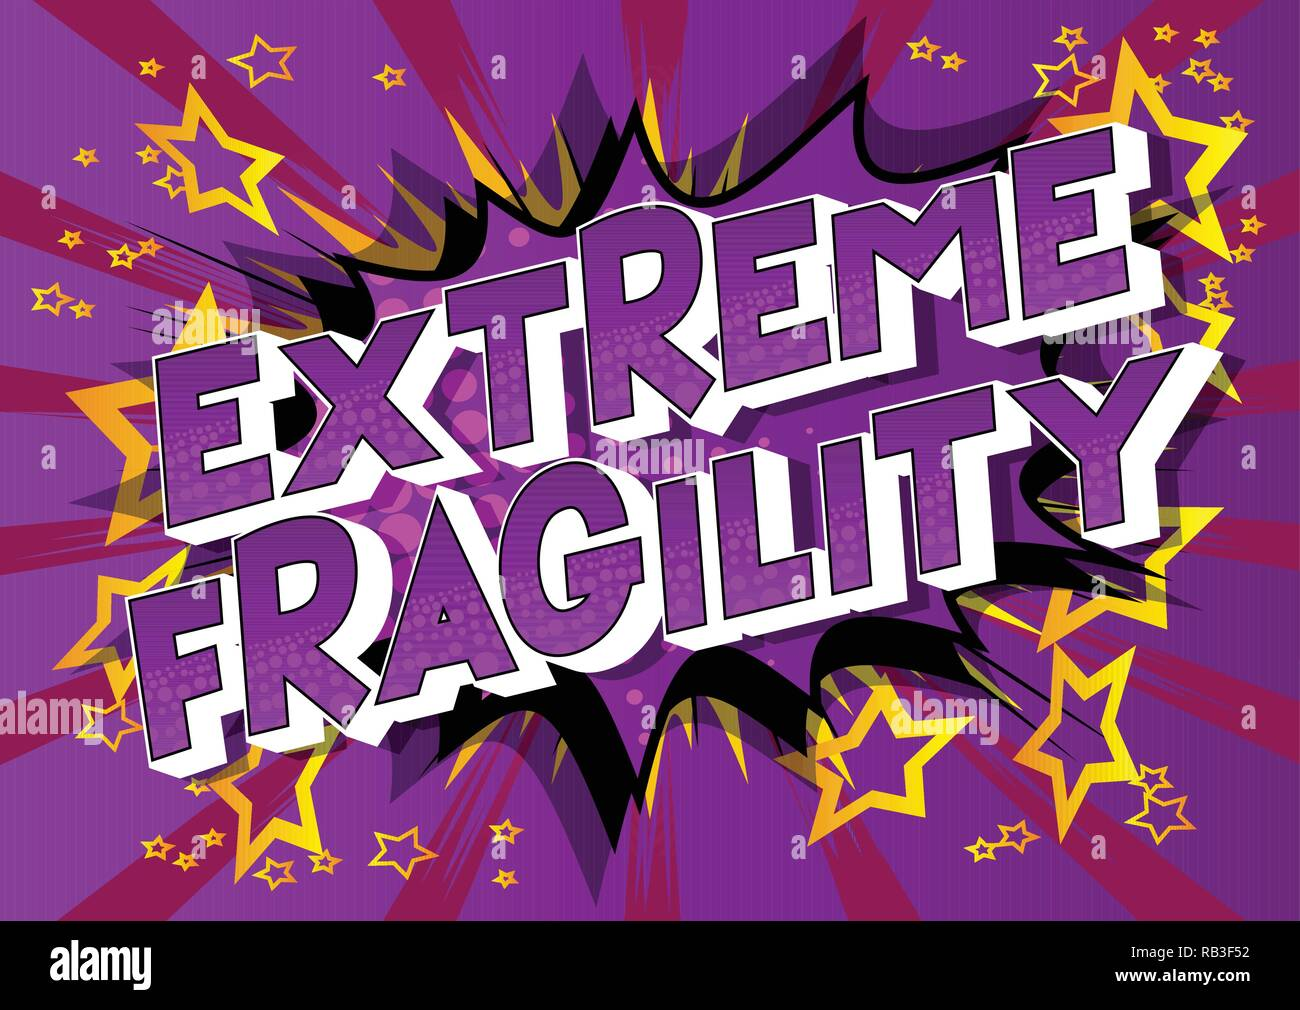 Extreme Fragility - Vector illustrated comic book style phrase on abstract background. - Stock Vector